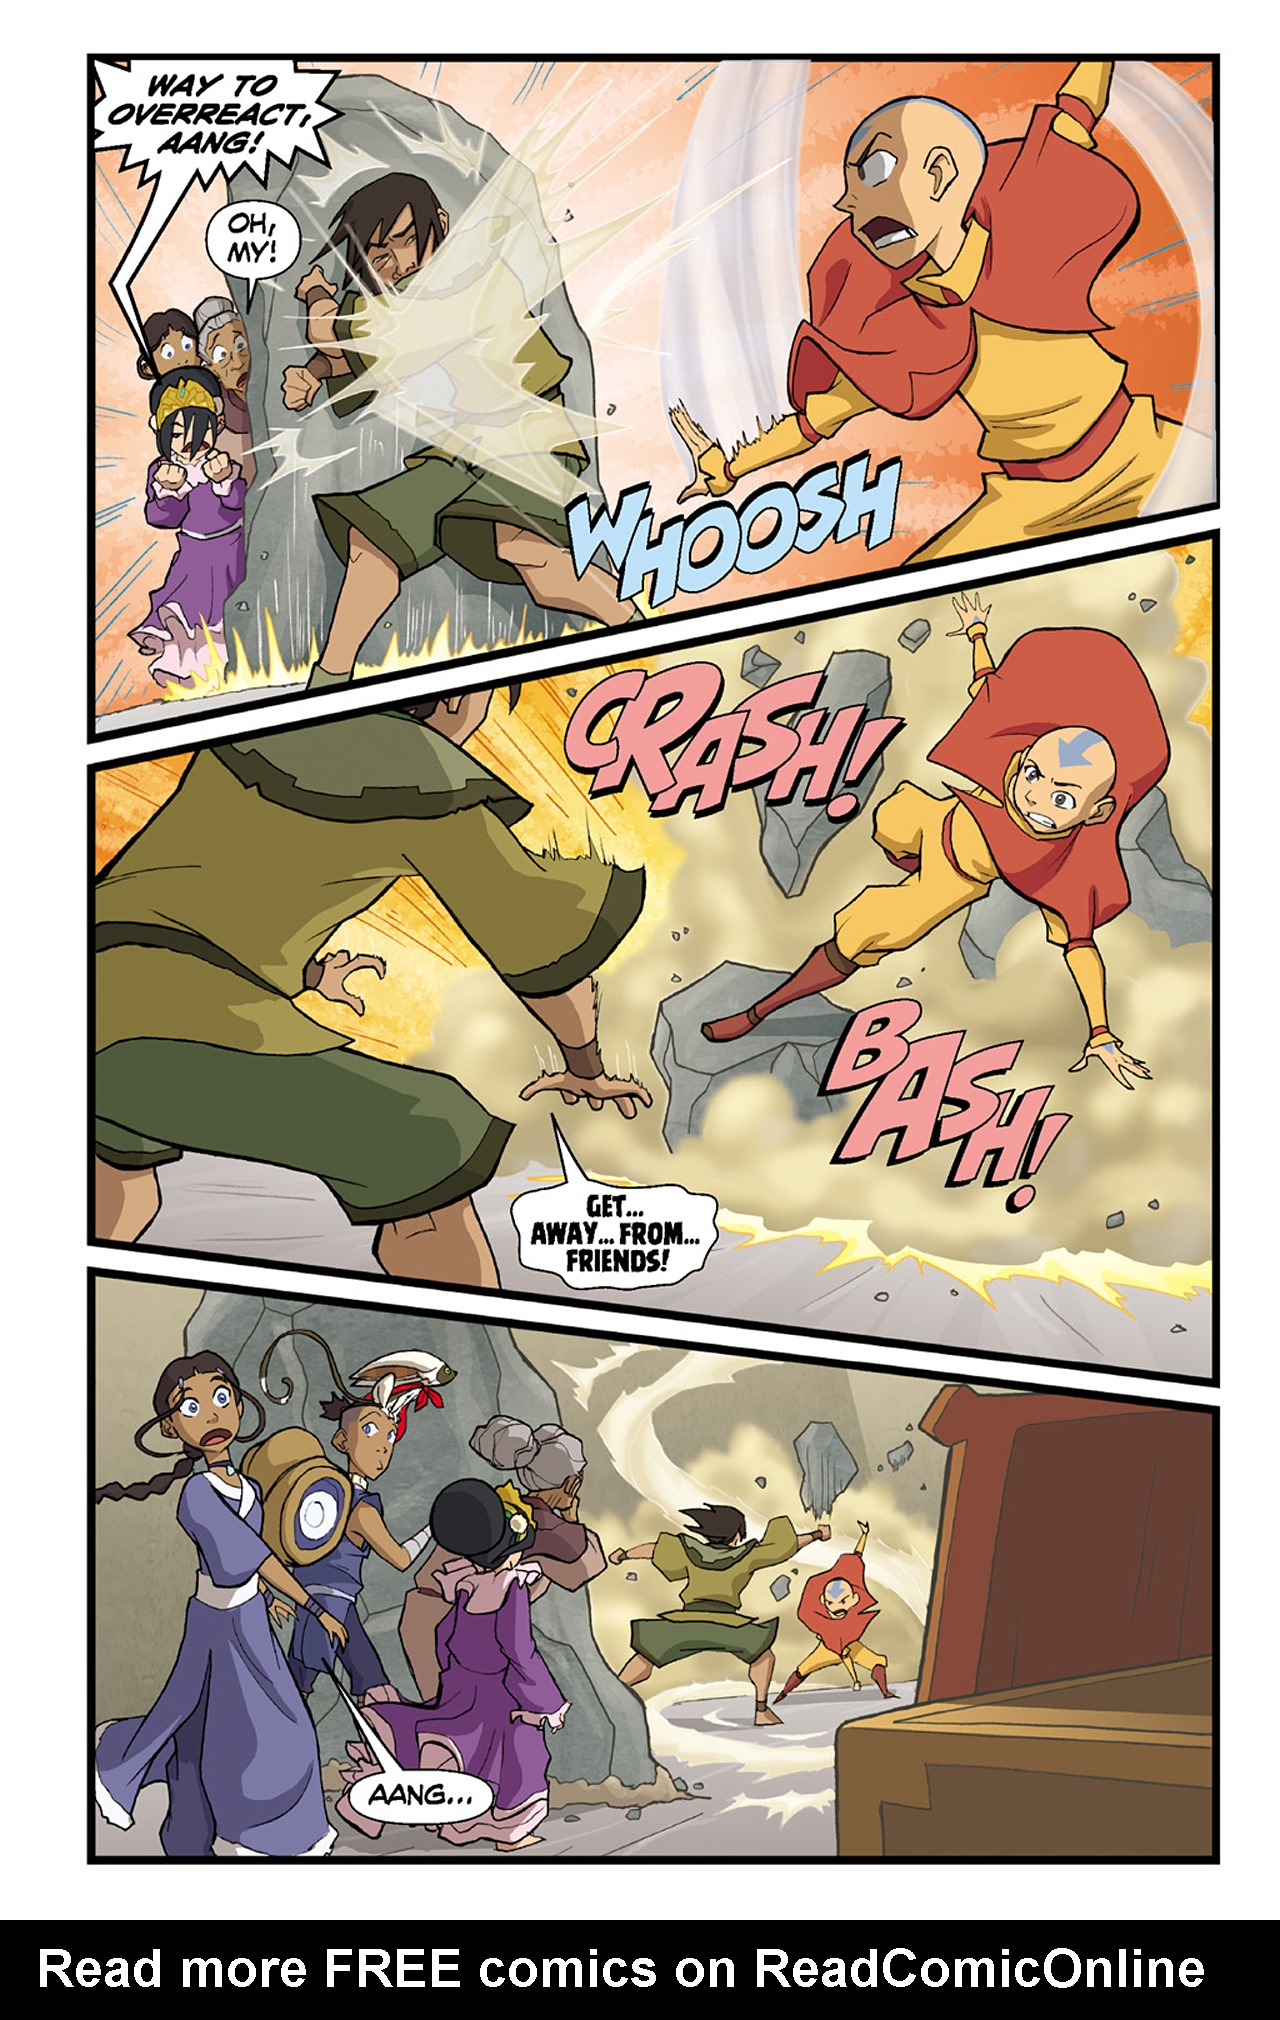 Nickelodeon Avatar: The Last Airbender - The Lost Adventures chap full pic 76